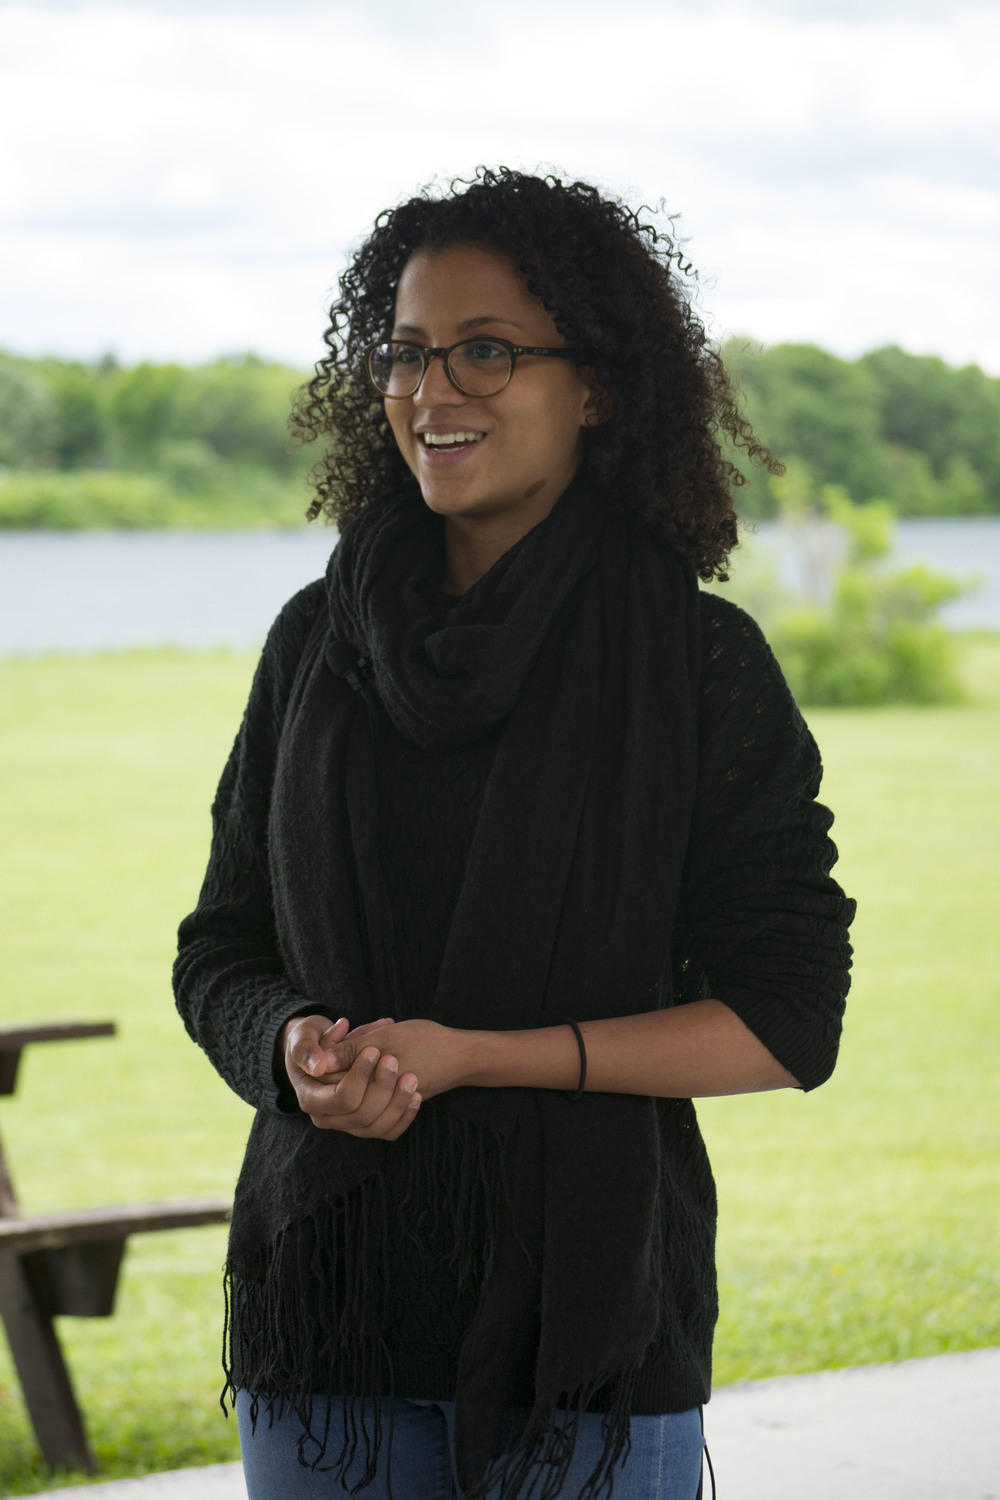 Meïwen Mbesol, St. Lawrence River Institute student